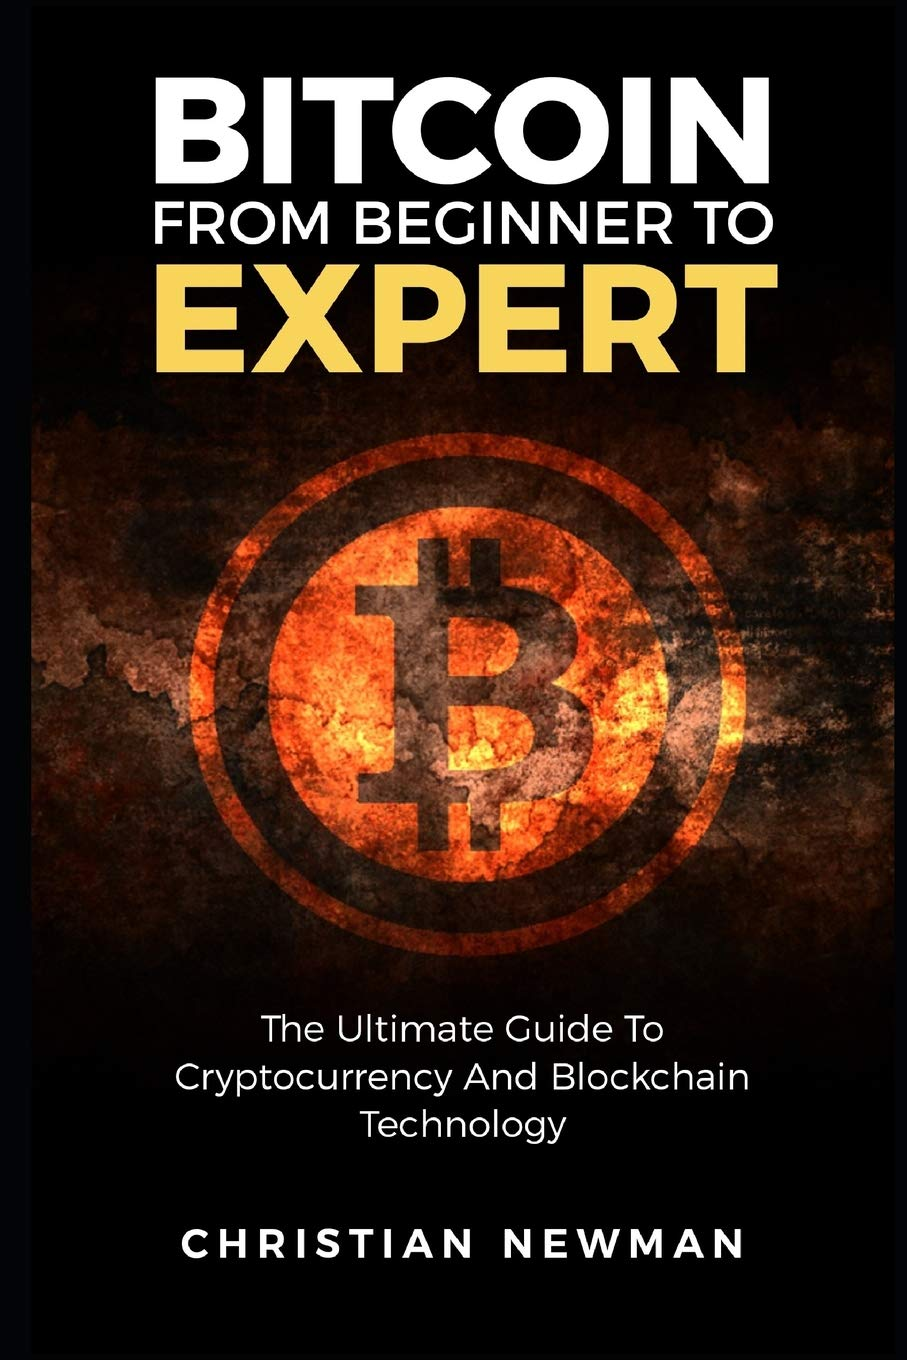 Bitcoin From Beginner To Expert: The Ultimate Guide To Cryptocurrency And Blockchain Technology - Tolerant Planet